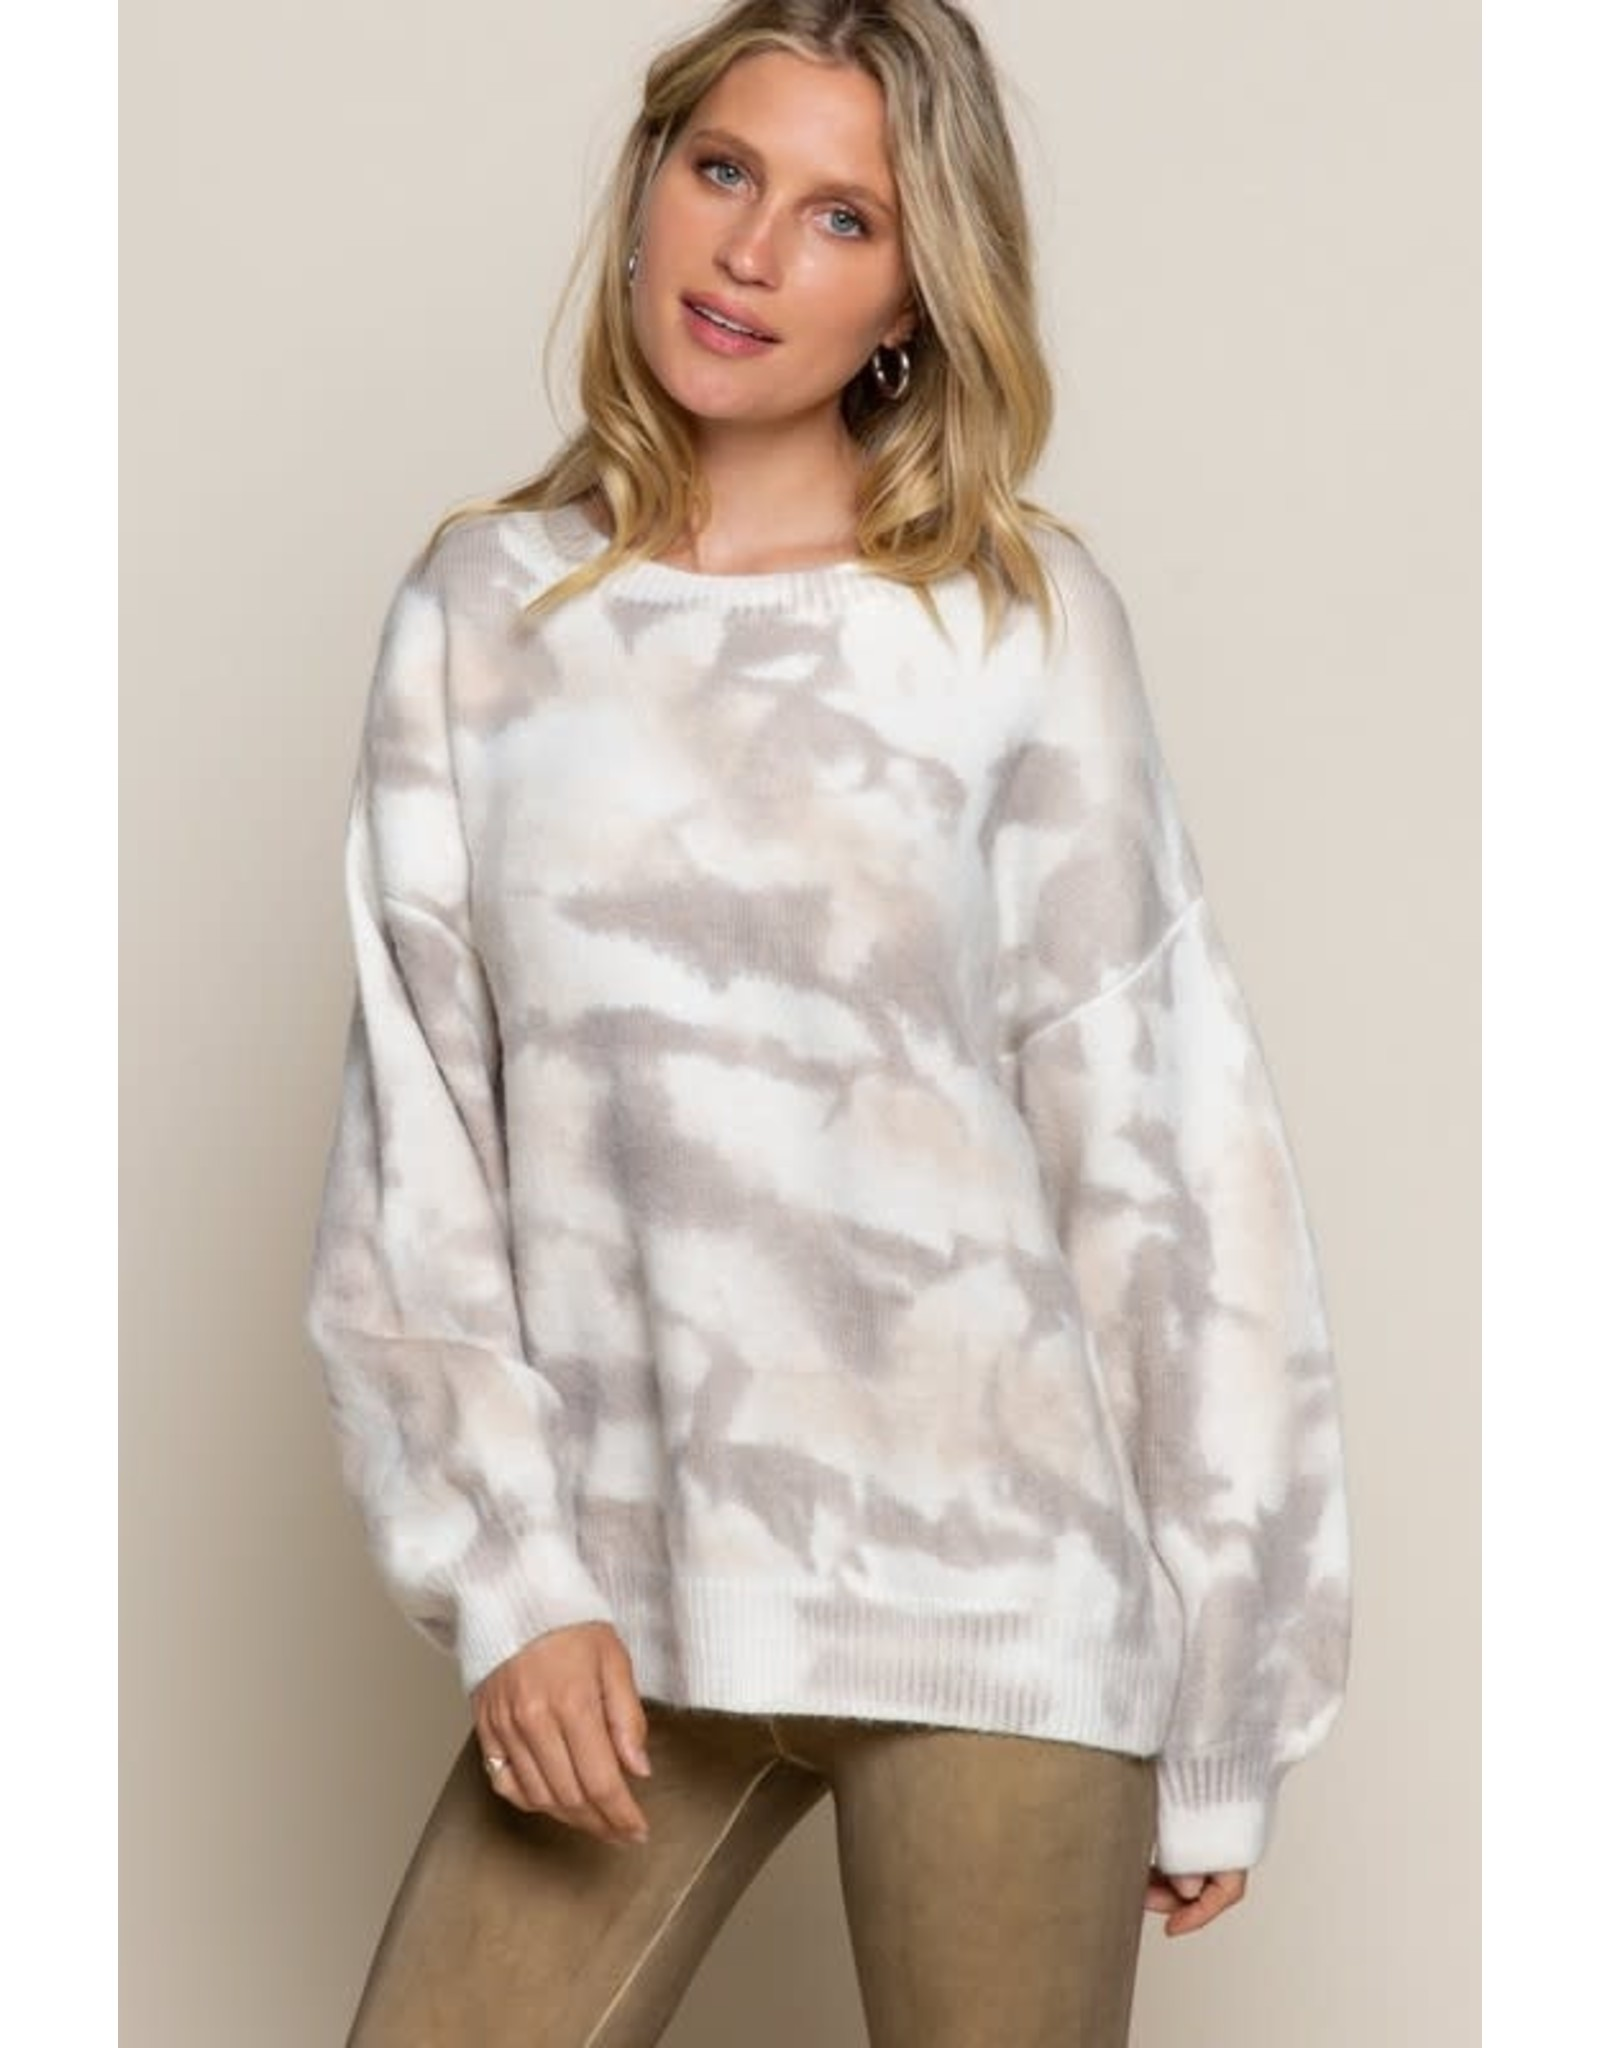 Mixed Personalities Sweater